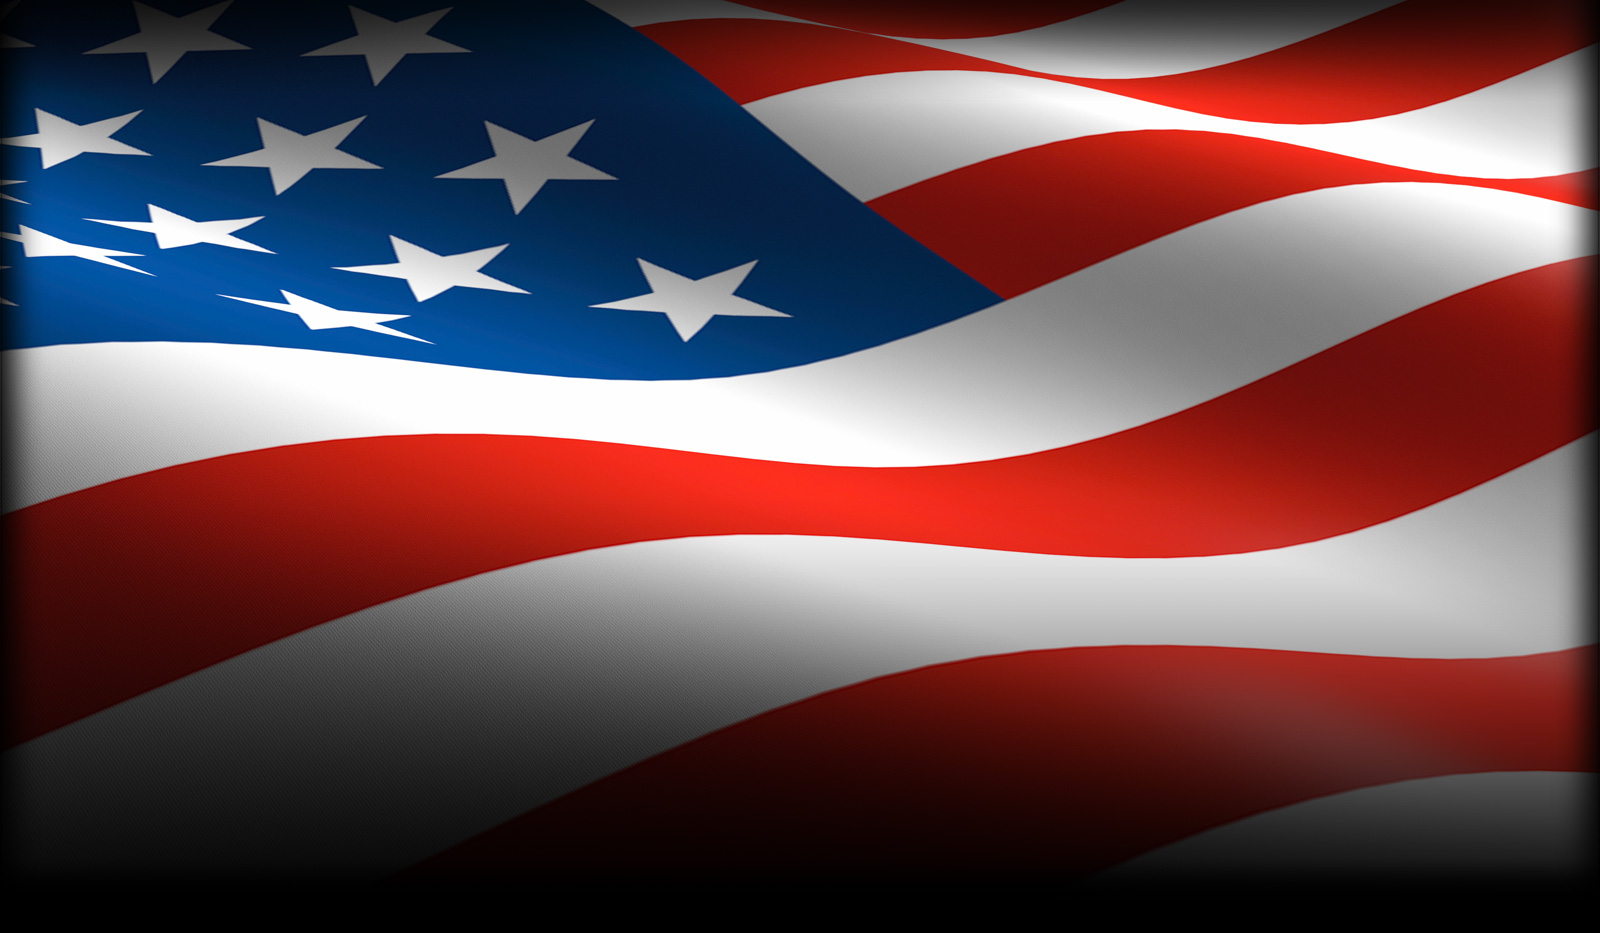 patriotic military background wwwpixsharkcom images